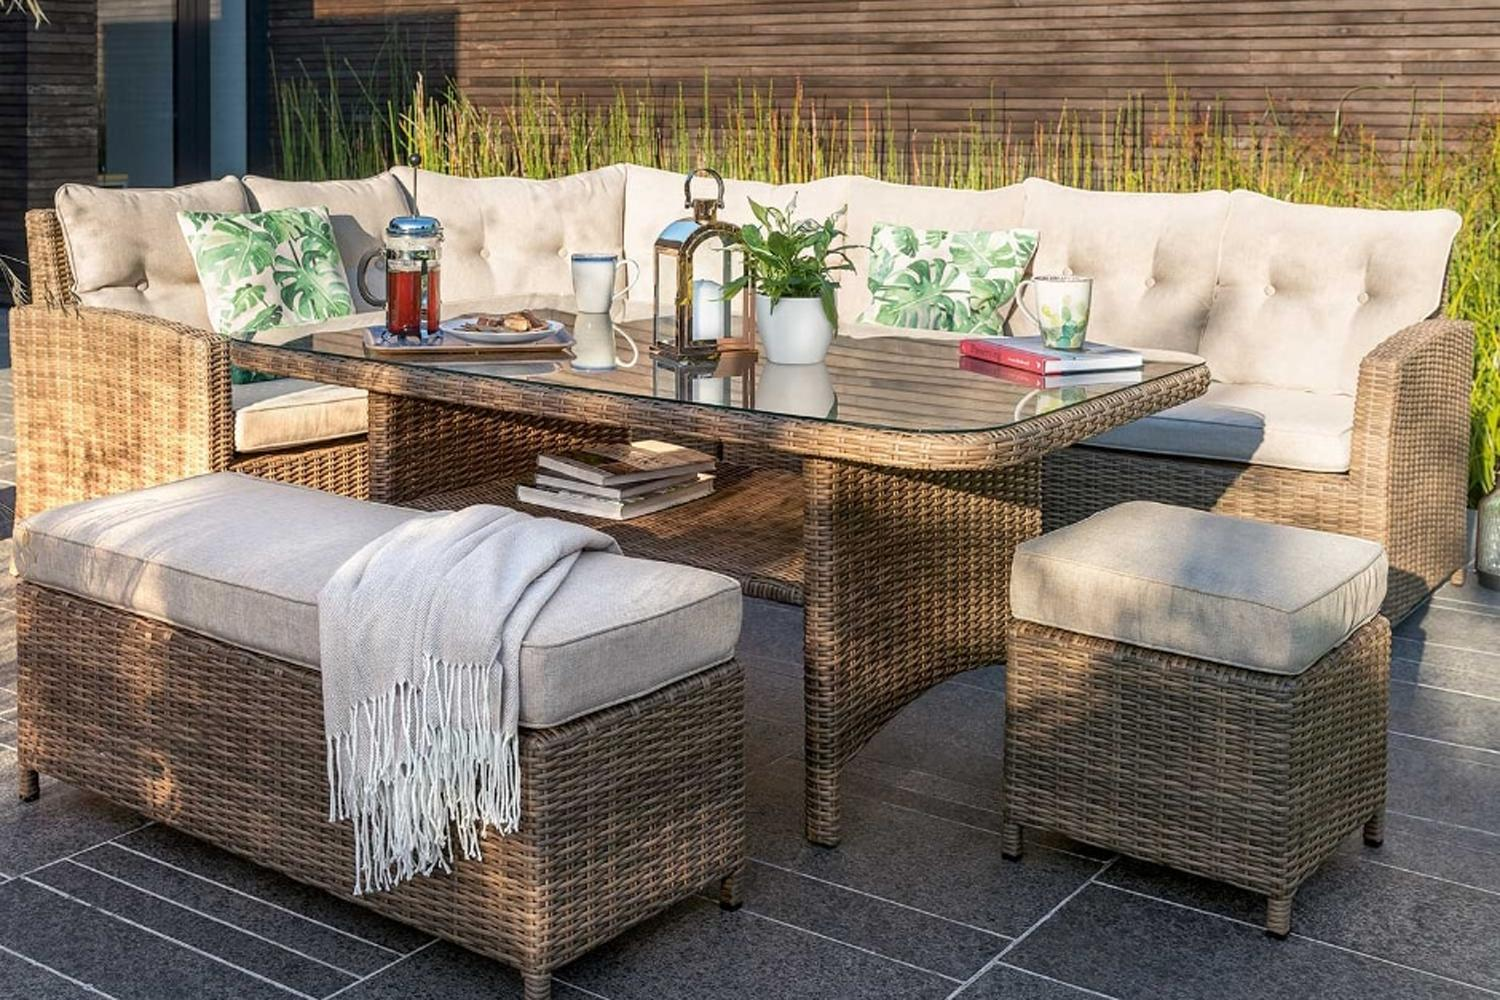 Best Garden Furniture Sales Rattan Tables And Chairs And The Best Outdoor Sofa Sets London Evening Standard - Garden Furniture Clearance Argos